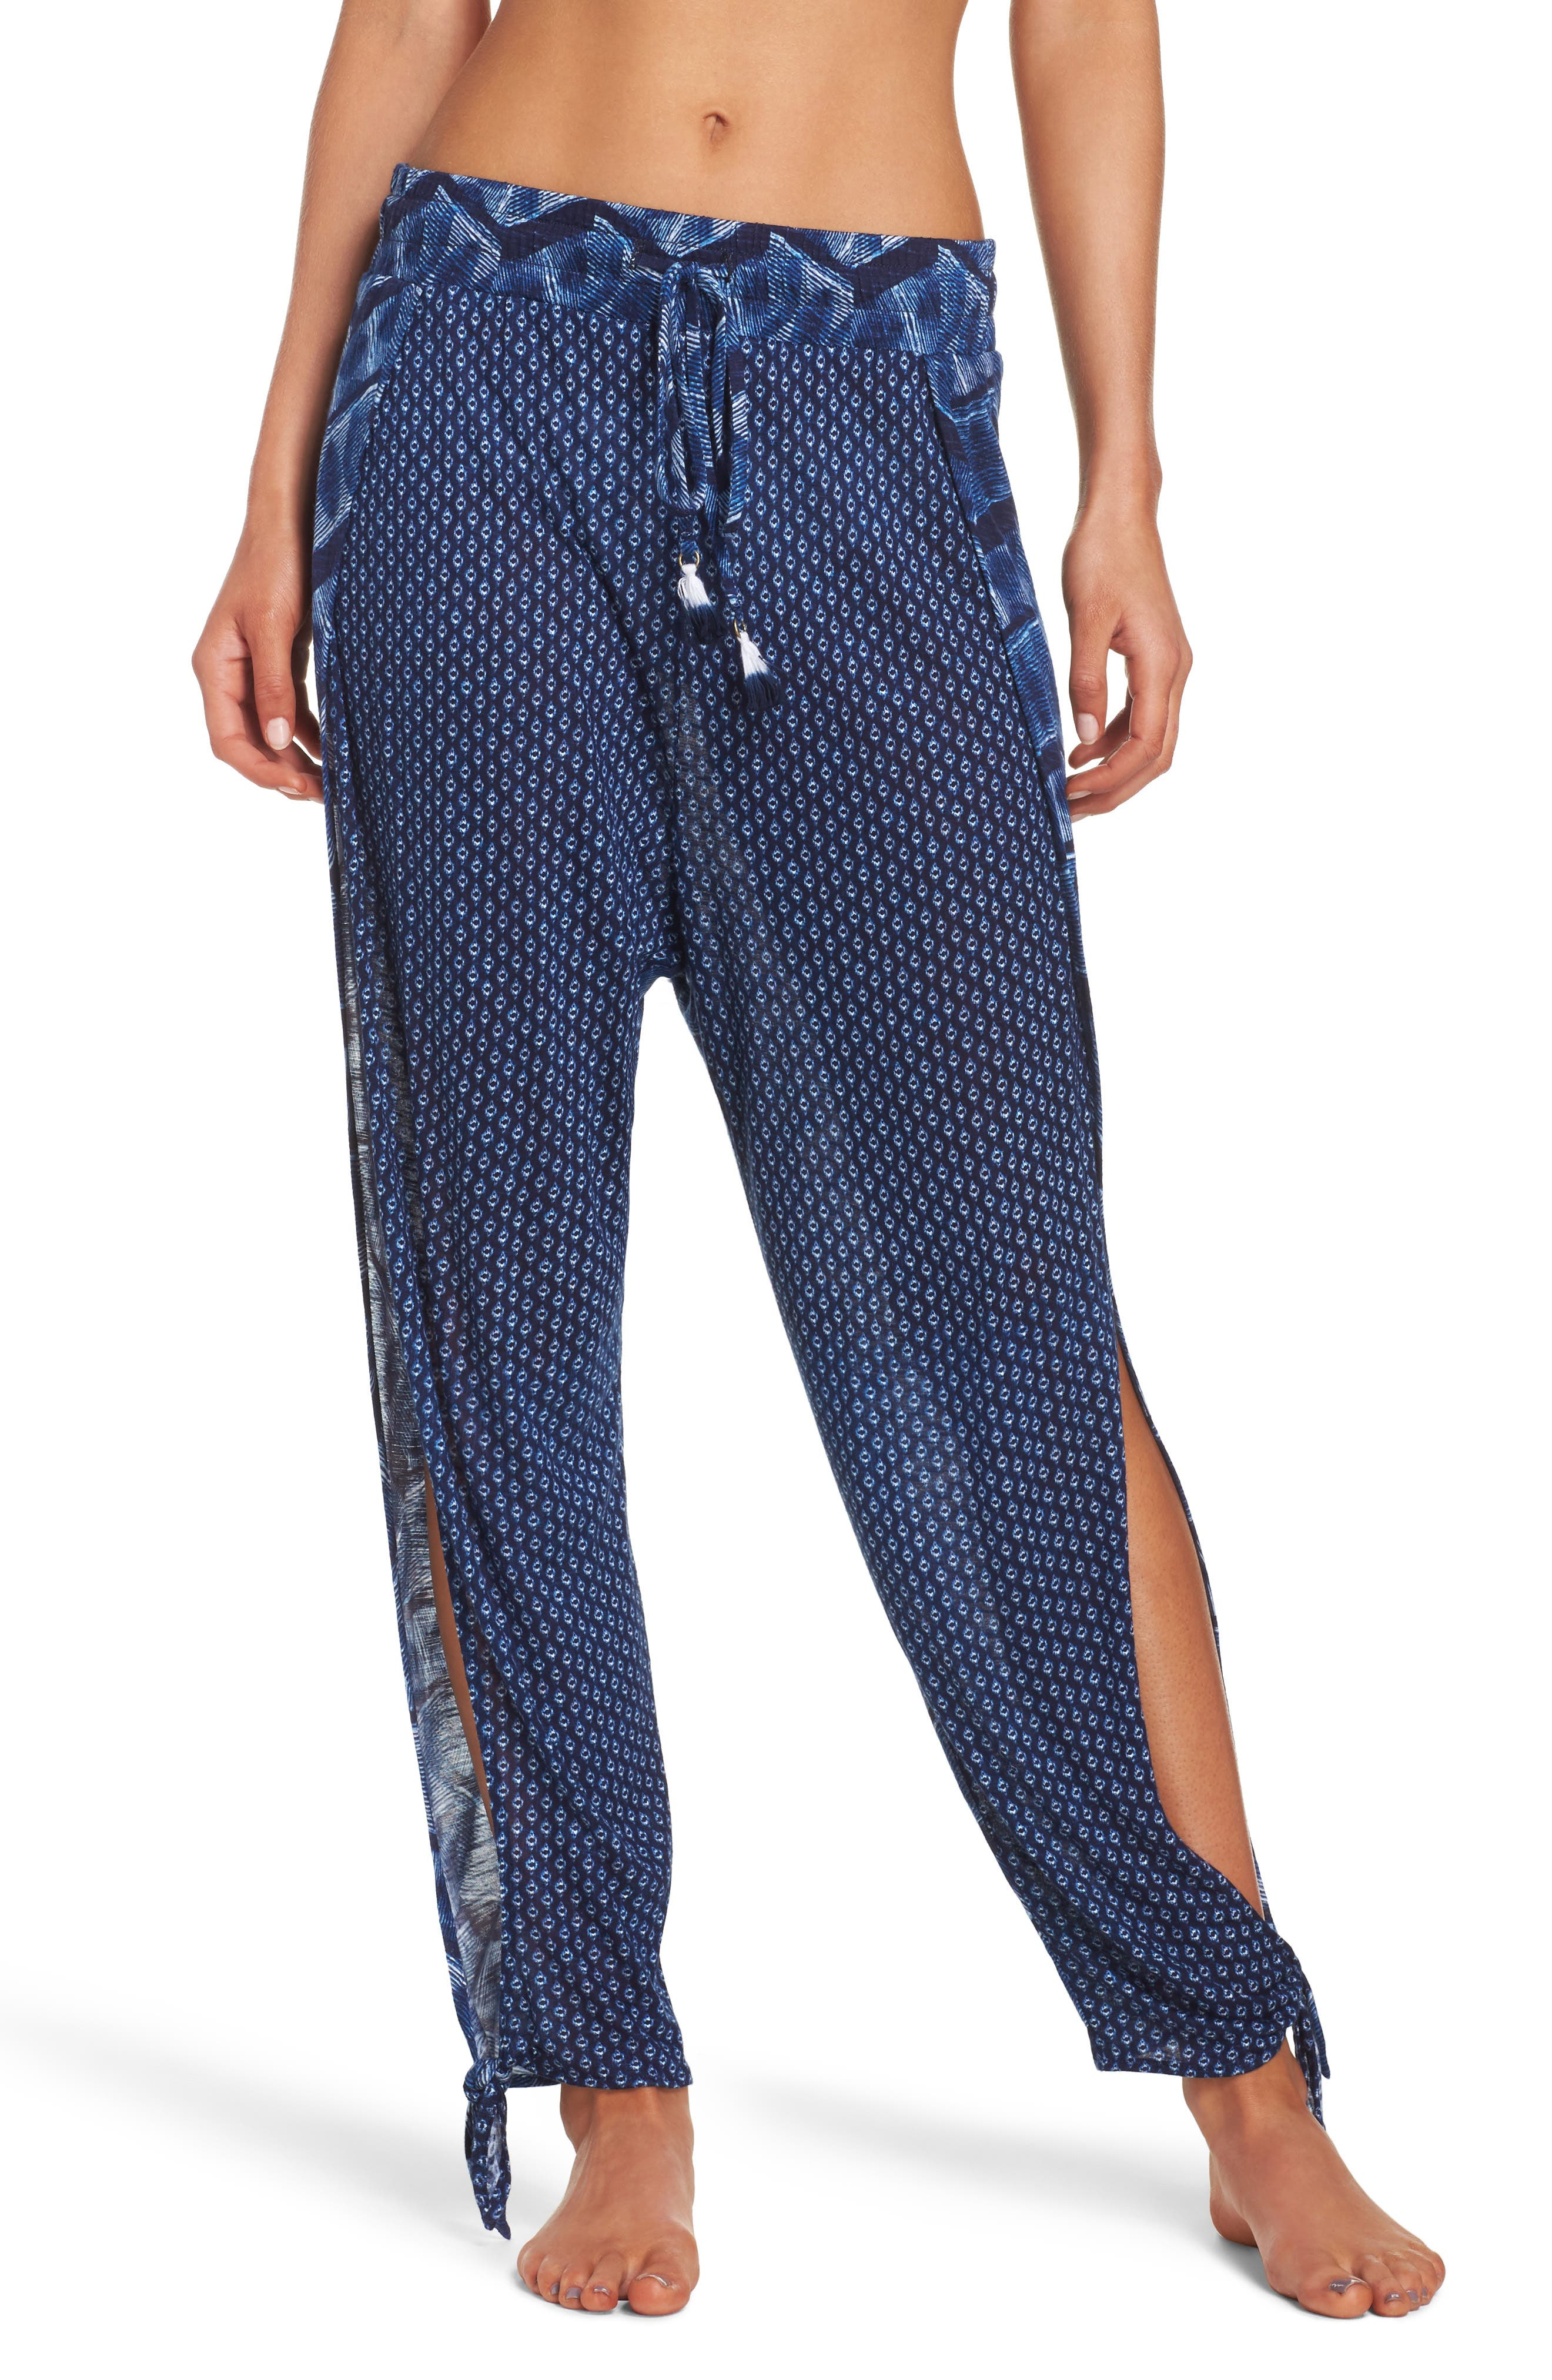 Nomad Ankle Tie Cover-Up Pants,                             Main thumbnail 1, color,                             410